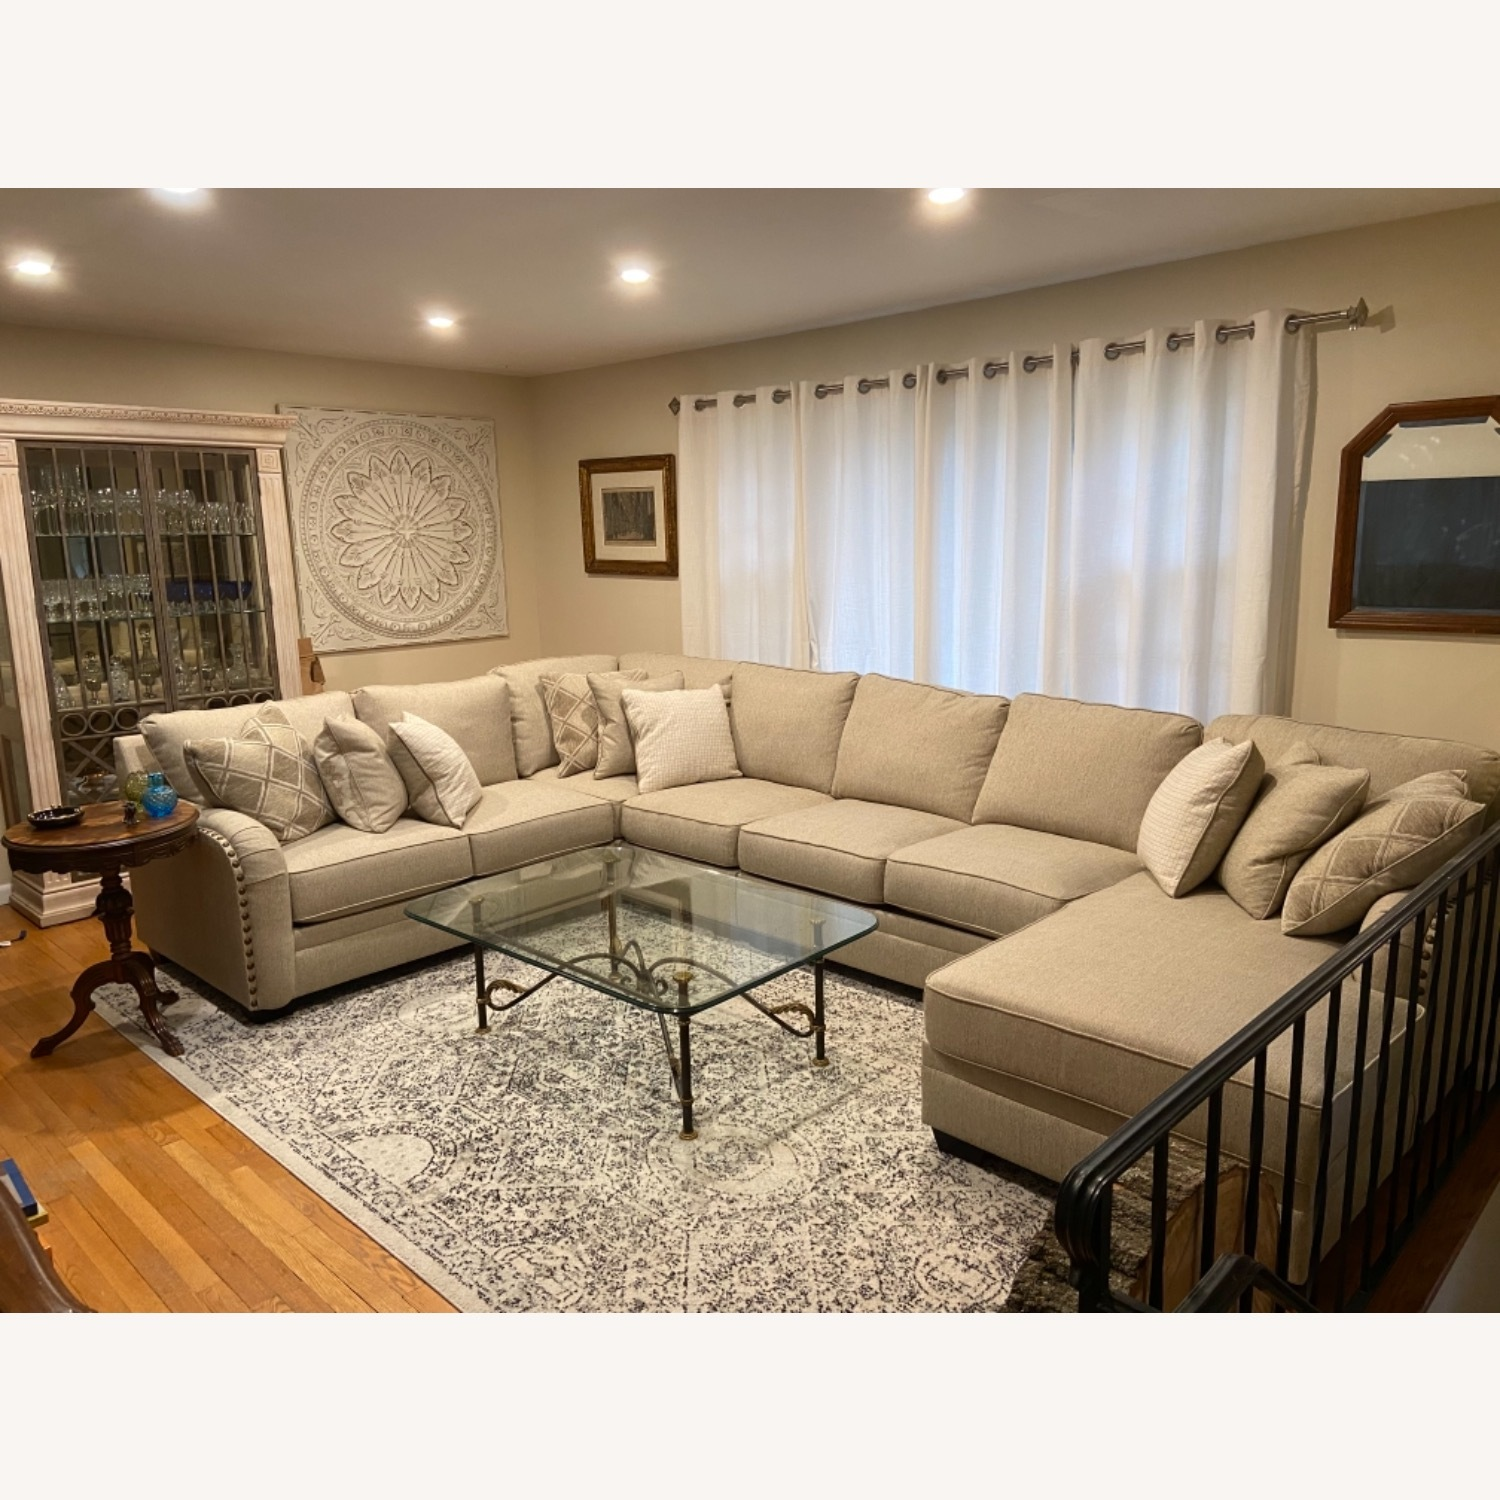 Ashley Furniture 5-pc Sectional with Chaise - image-1